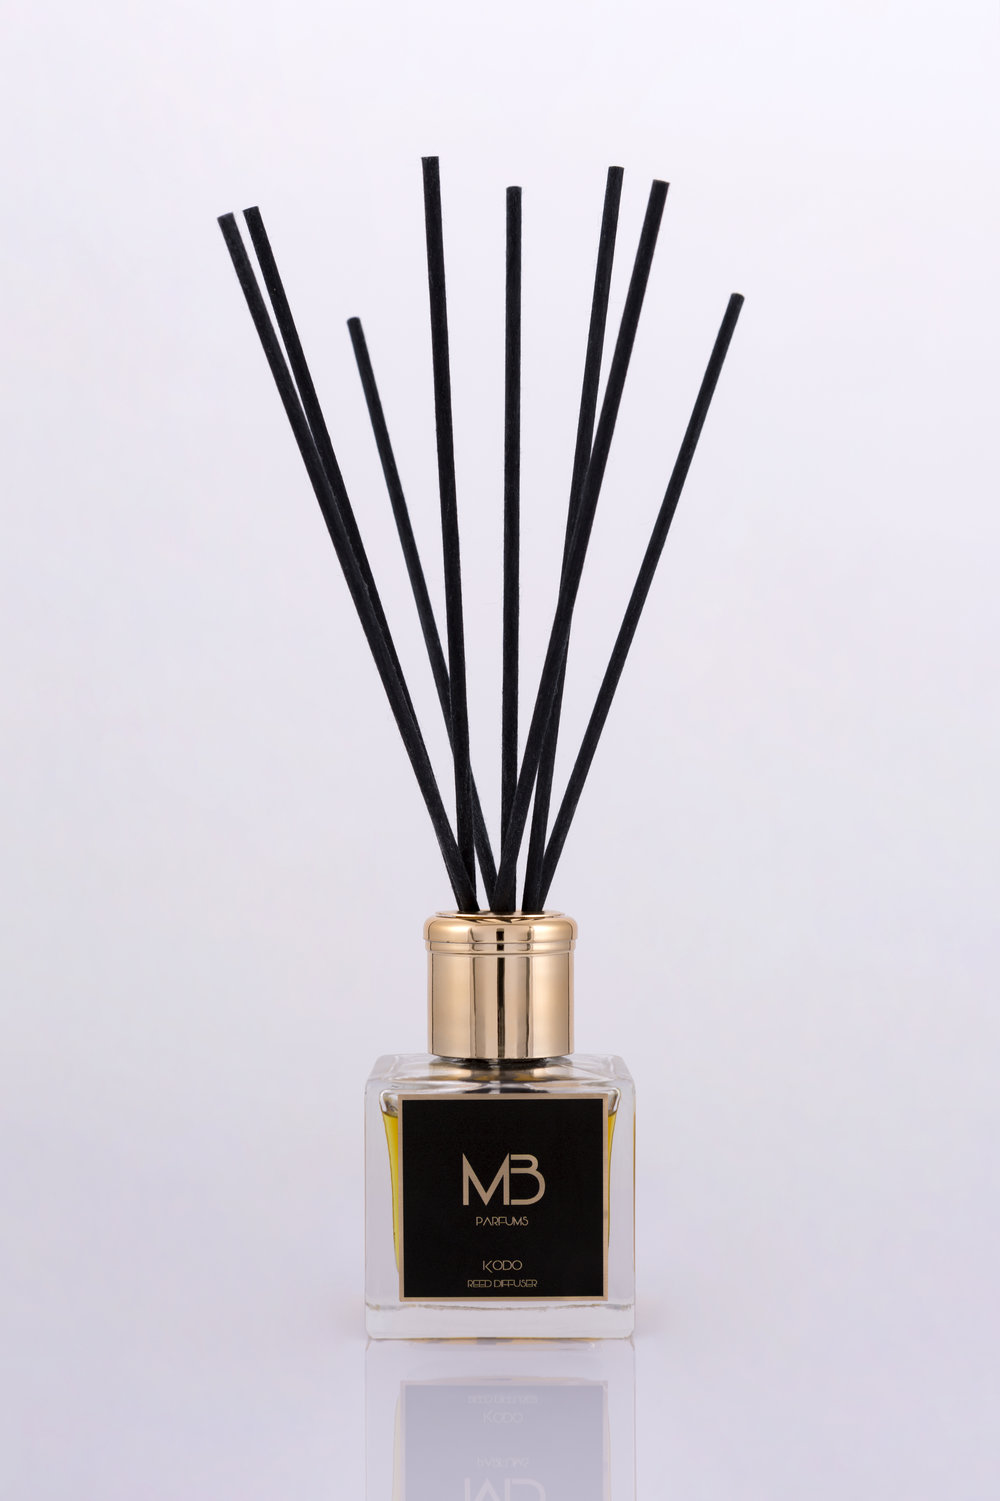 The fragrance of Kodo reed diffuser creates a serene and welcoming atmosphere.